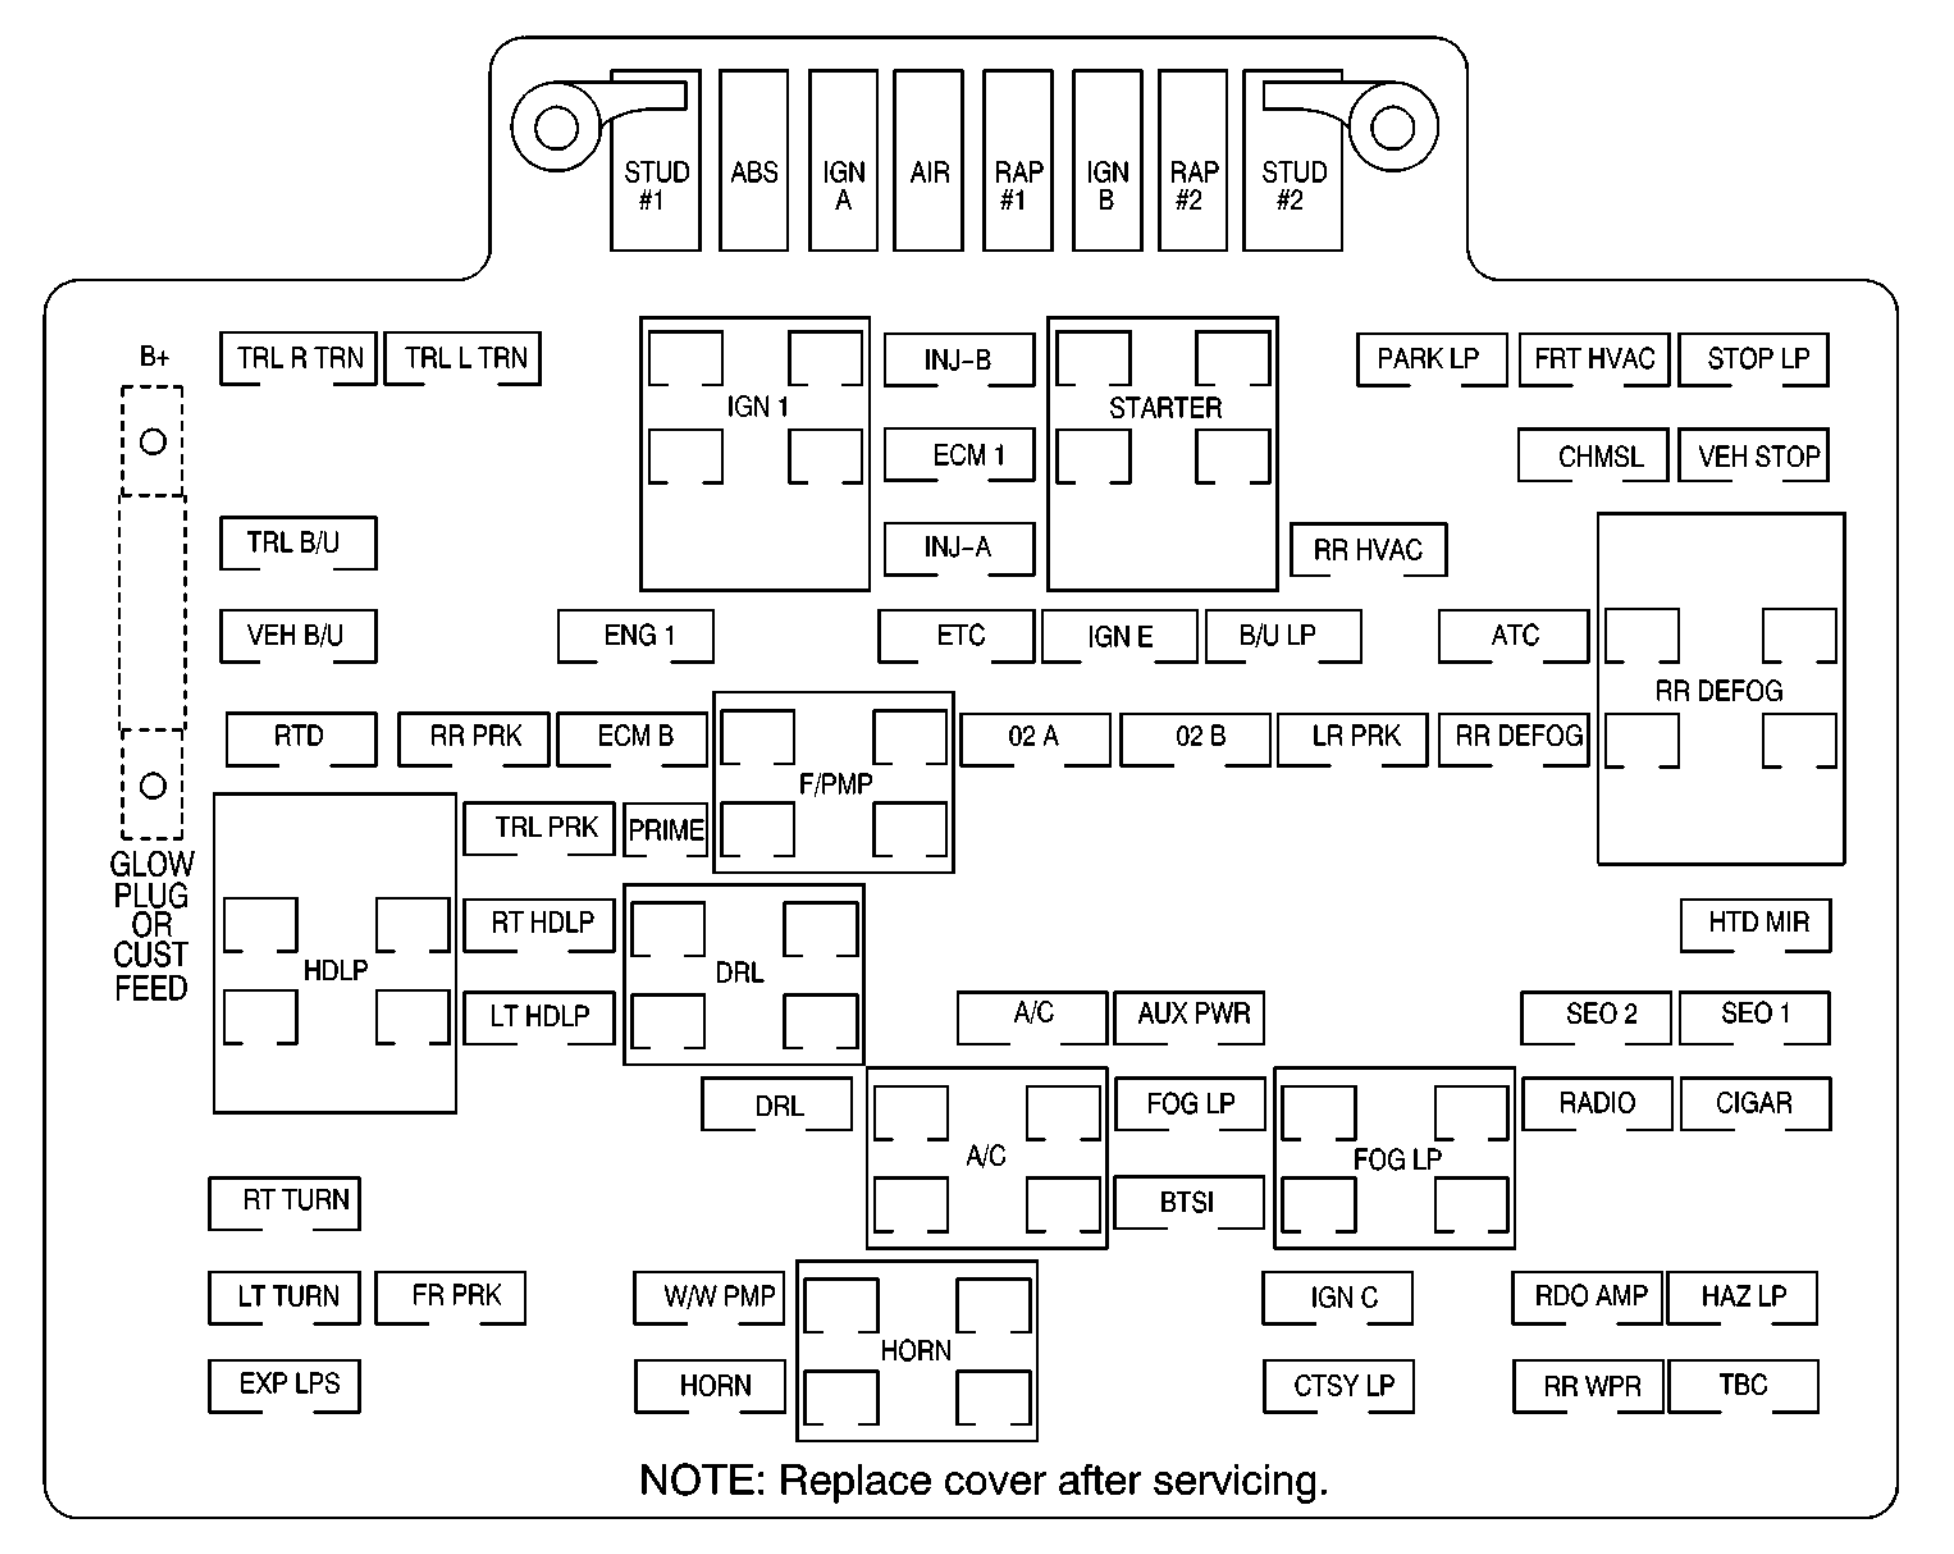 2001 suburban fuse diagram learn circuit diagram u2022 rh gadgetowl co 2007 tahoe ltz fuse box diagram